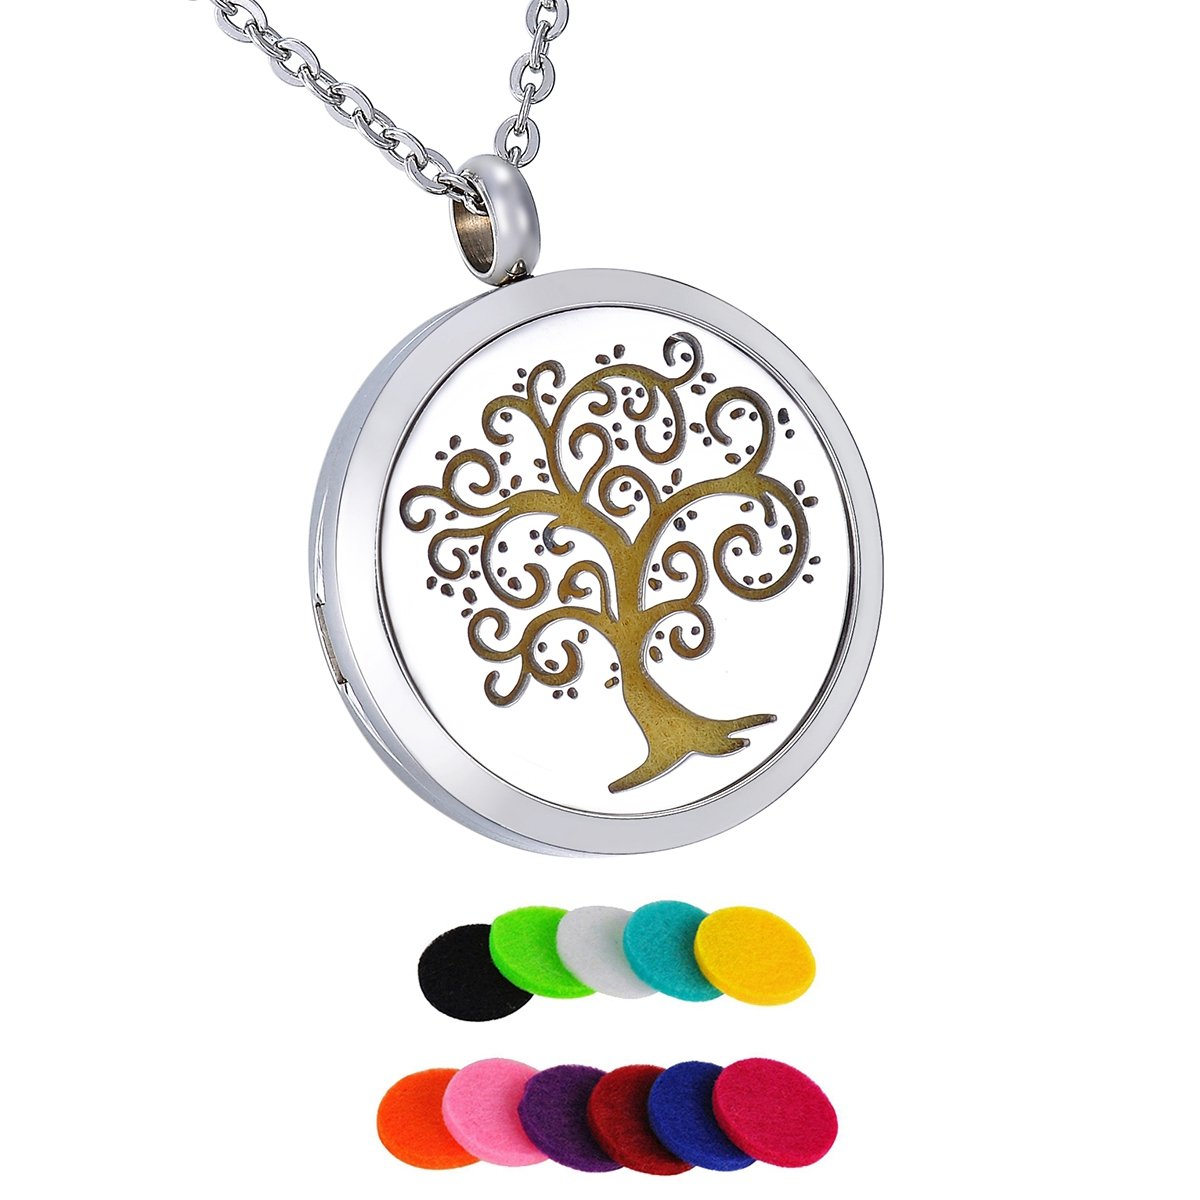 HooAMI Aromatherapy Essential Oil Diffuser Necklace - Family Tree Stainless Steel Locket Pendant,11 Refill Pads TY BETY116490